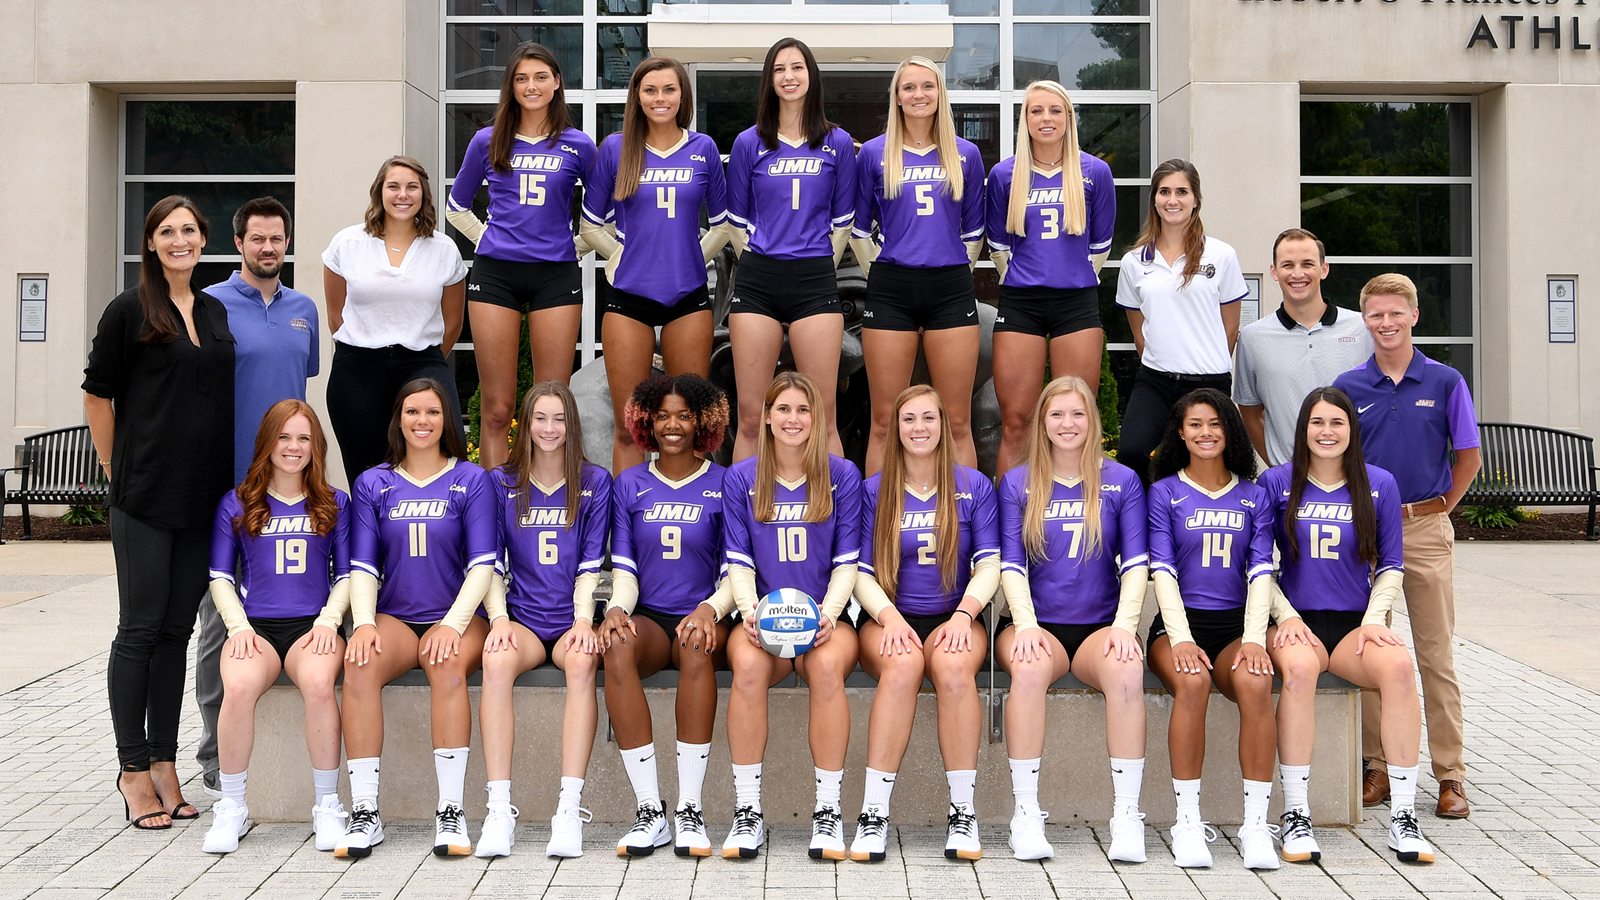 A team photo of the volleyball team